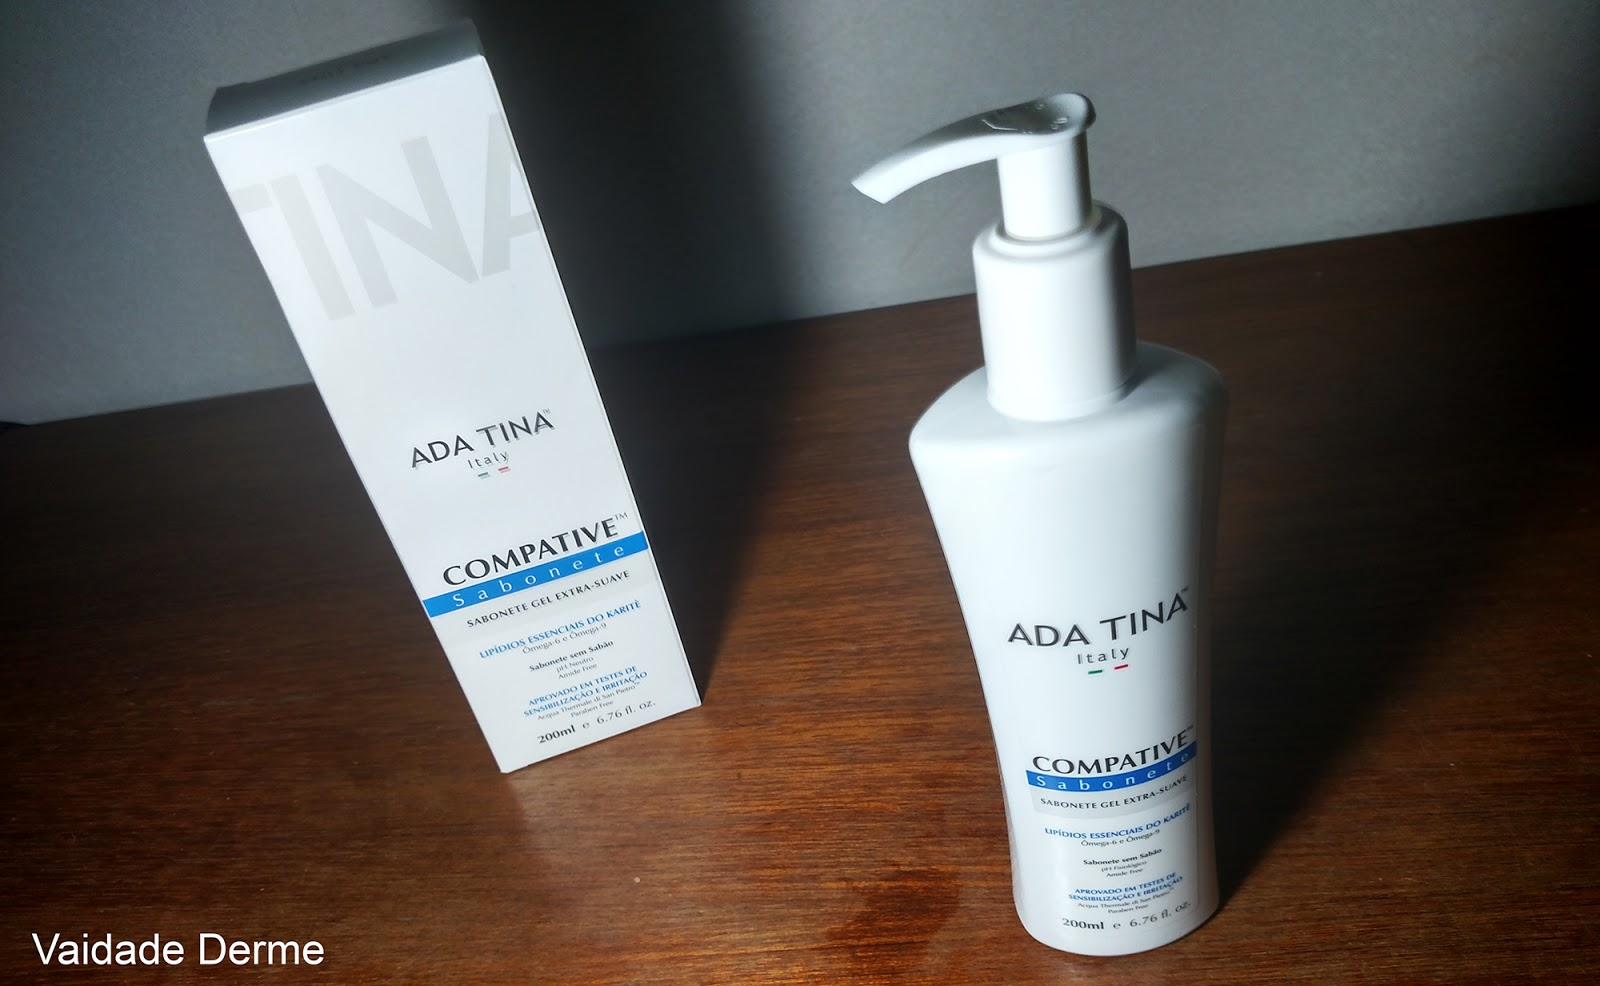 Ada Tina Compative Thermal Soap